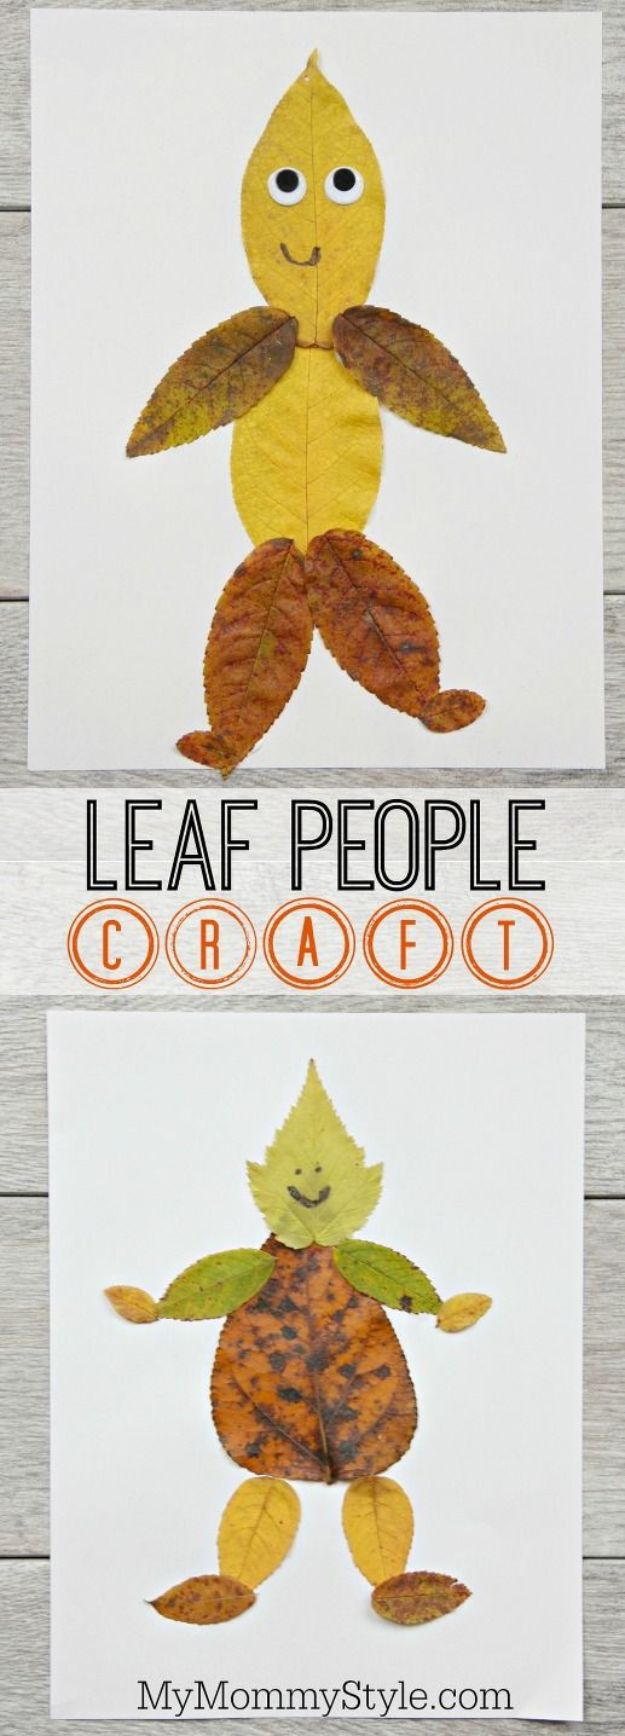 Fun Fall Crafts for Kids - Leaf People Craft - Cool Crafts Ideas for Kids to Make With Paper, Glue, Leaves, Corn Husk, Pumpkin and Glitter - Halloween and Thanksgiving - Children Love Making Art, Paintings, Cards and Fall Decor - Placemats, Place Cards, Wall Art , Party Food and Decorations for Toddlers, Boys and Girls #fallcrafts #kidscrafts #kids